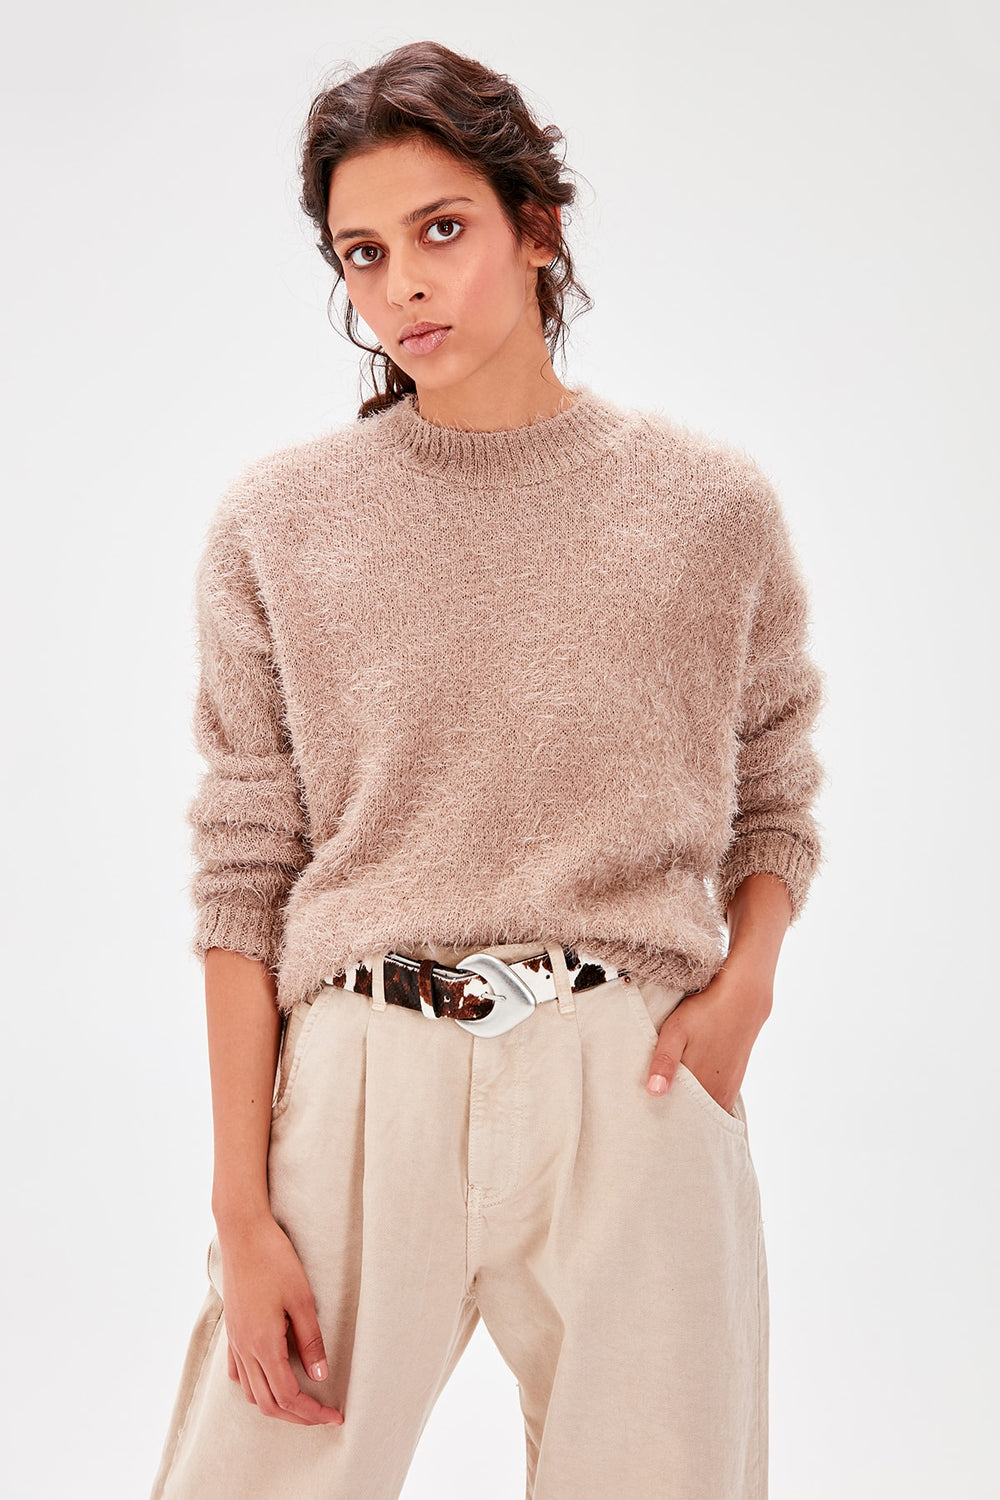 Stone Bicycle Neck Beard Yarn Sweater - Top Maxy